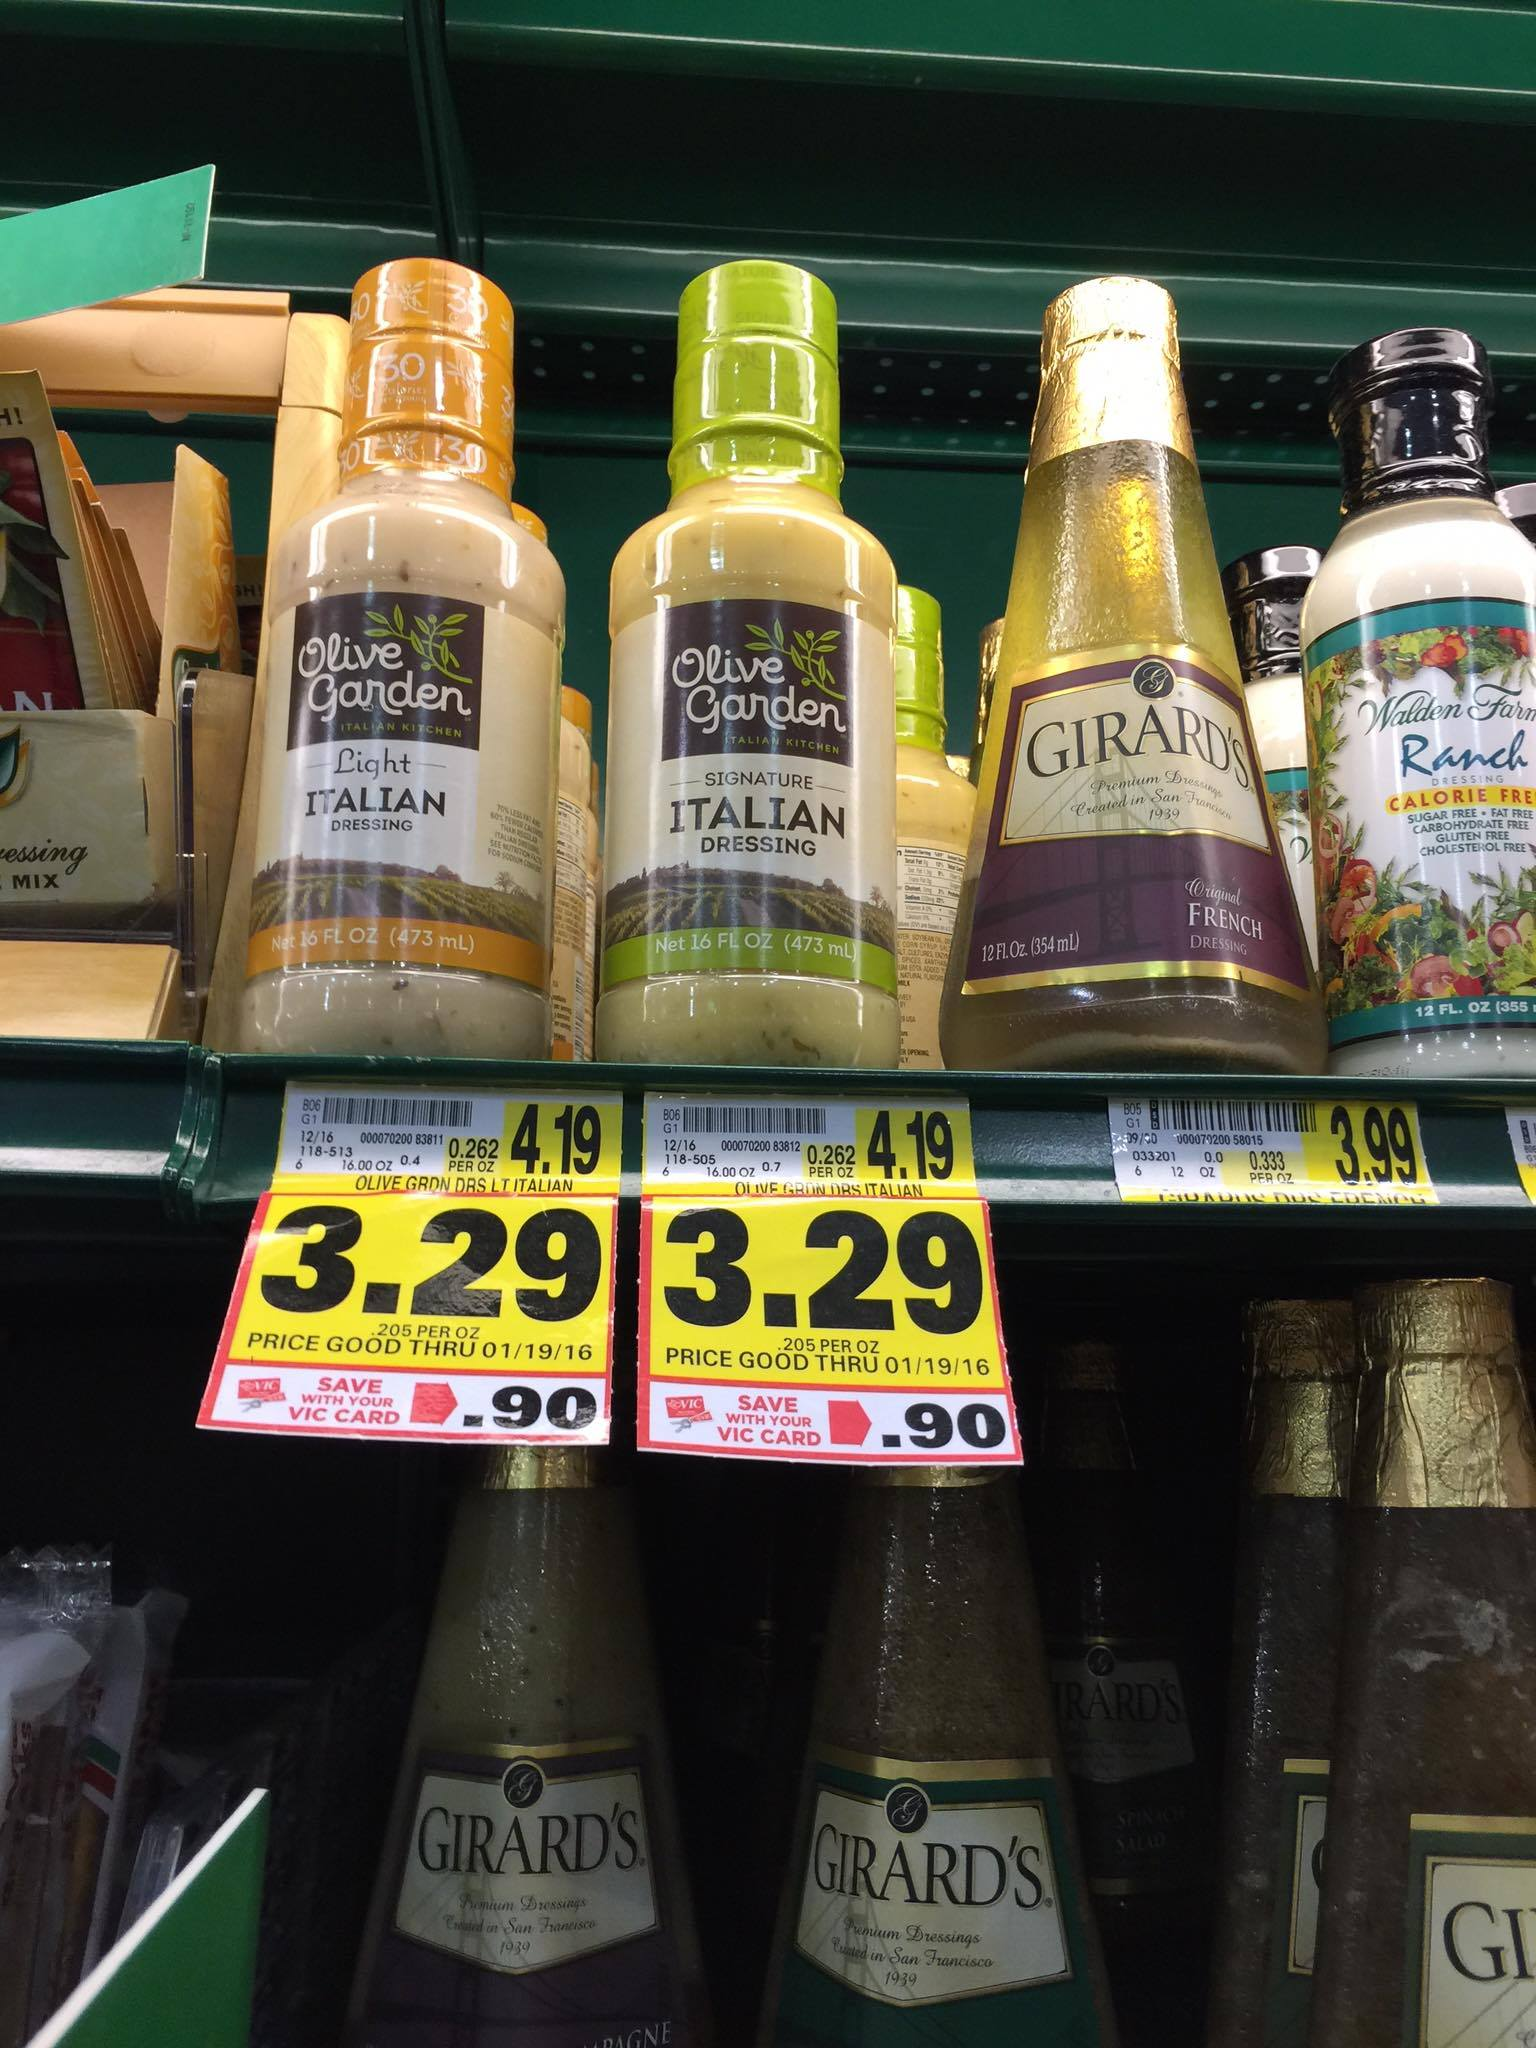 olive garden salad dressing sale coupon - Olive Garden Salad Dressing